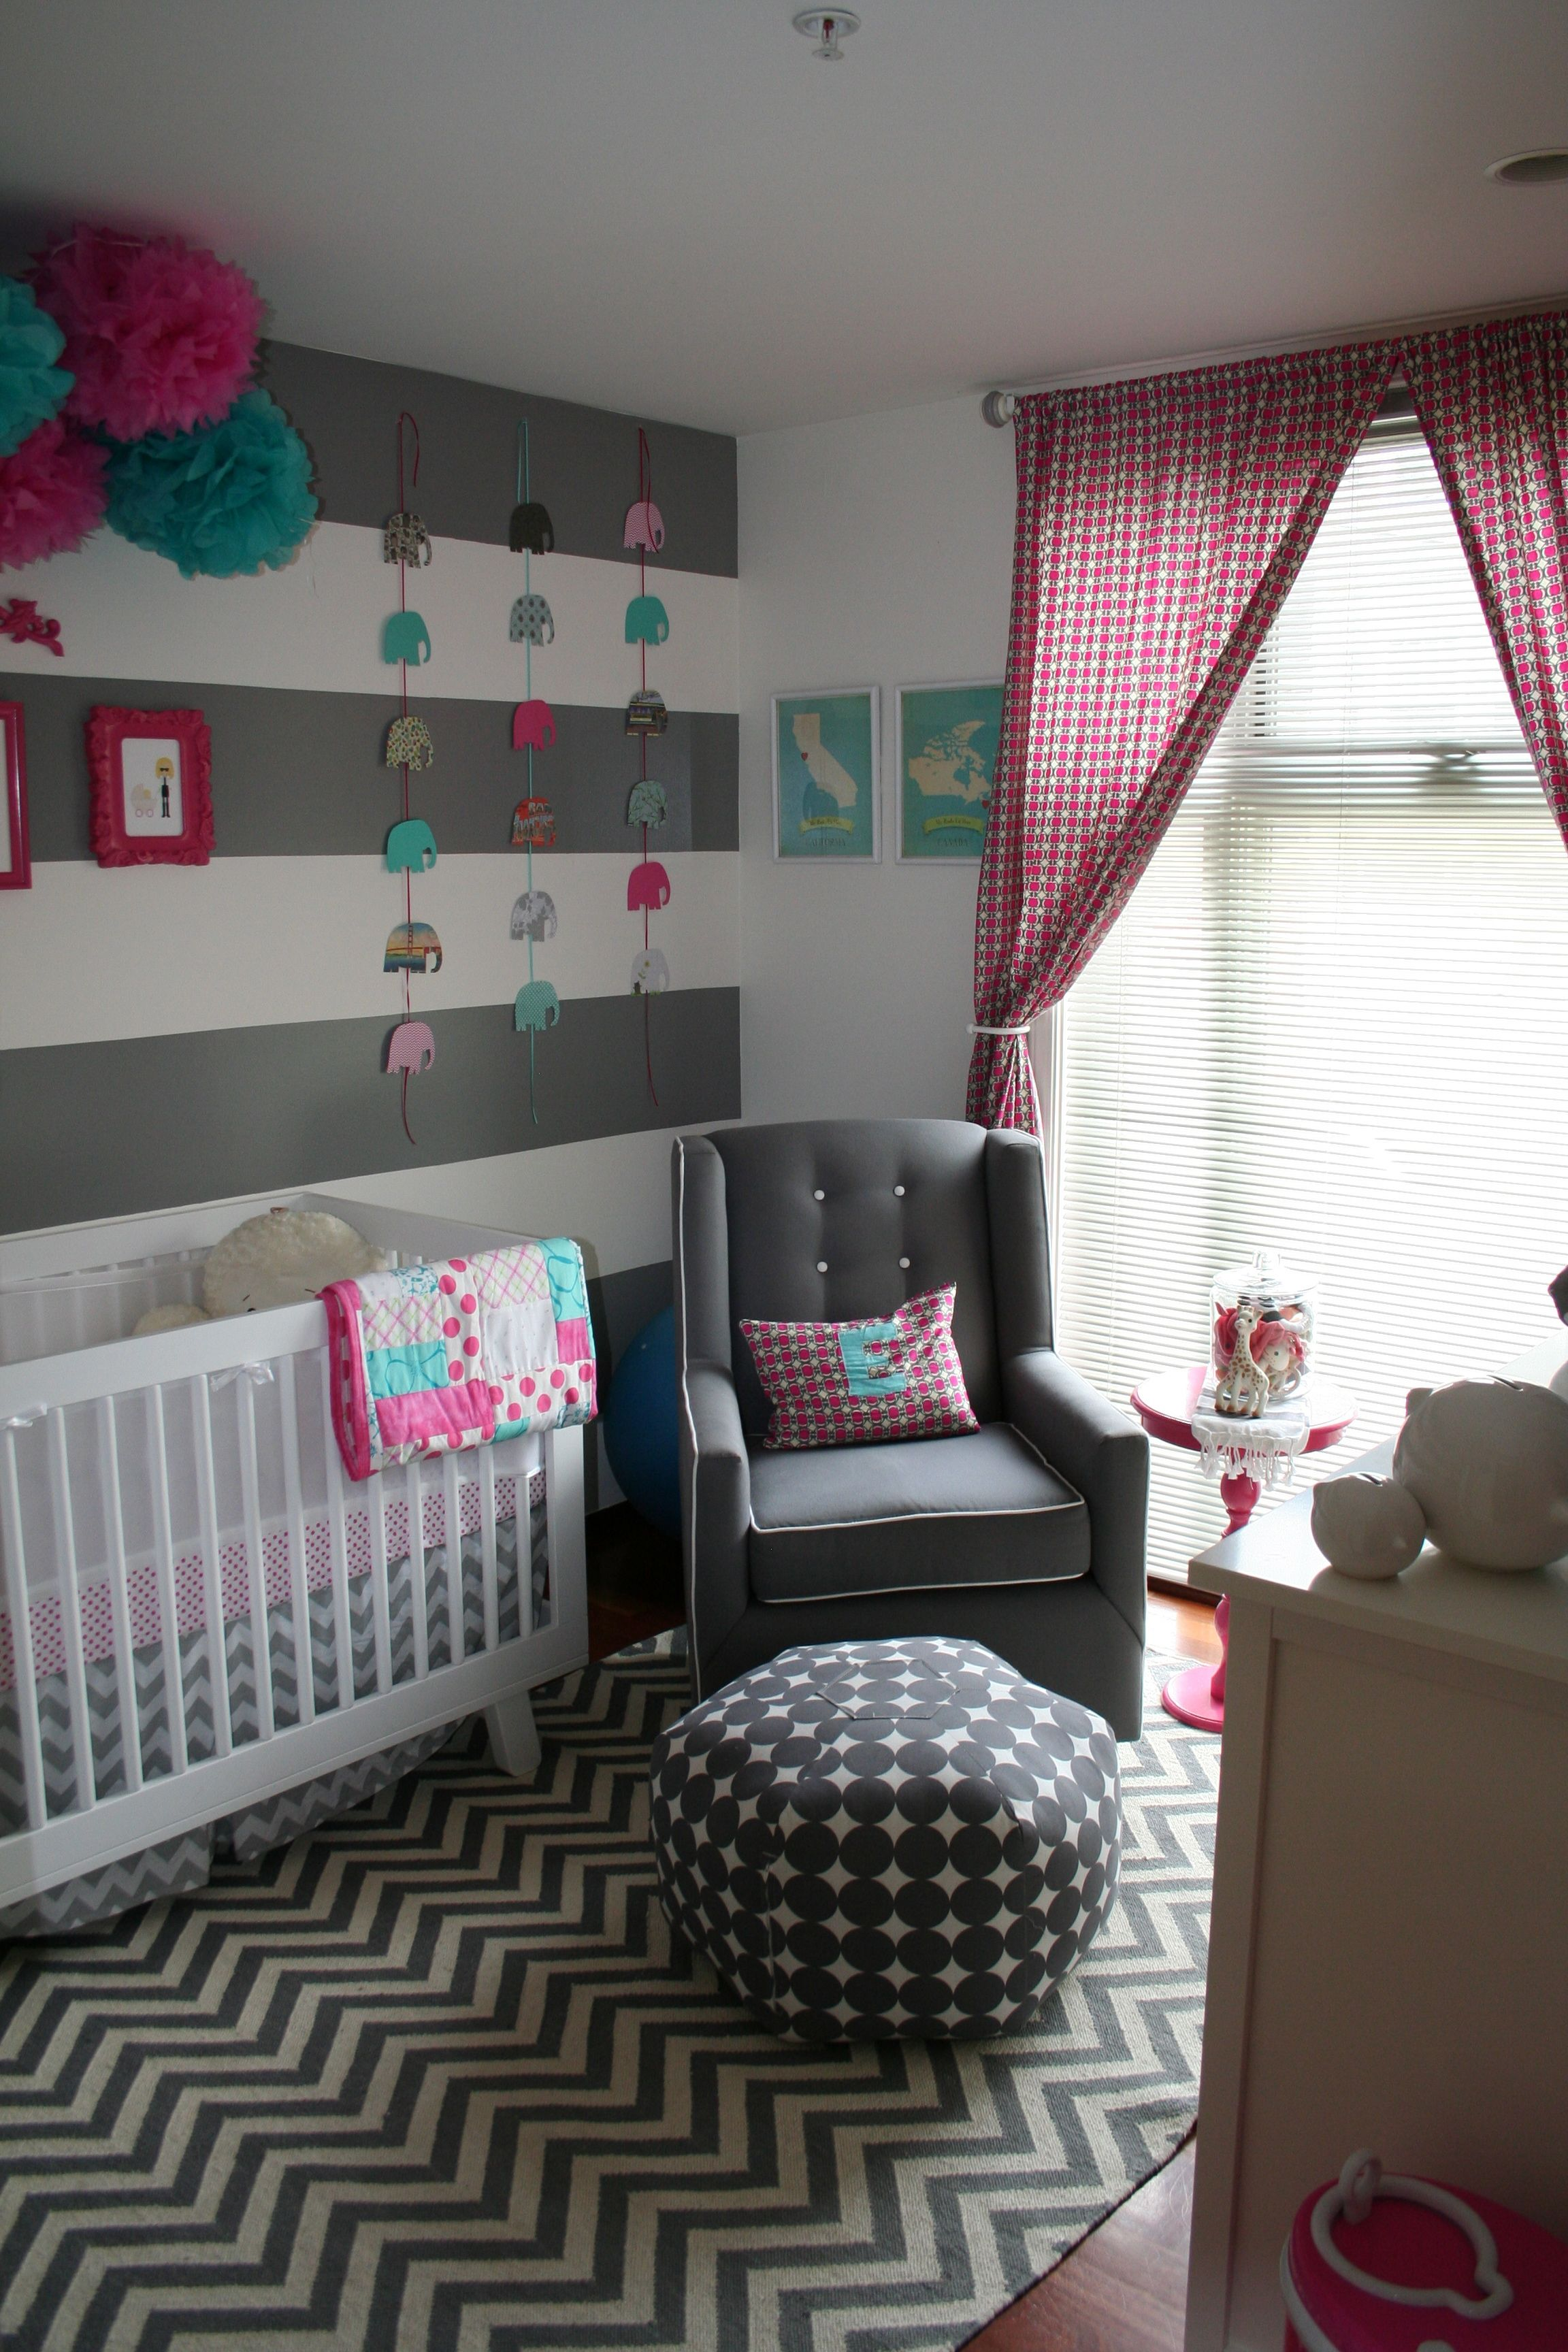 Hot Pink and Turquoise Nursery for Emma Gwendolyn